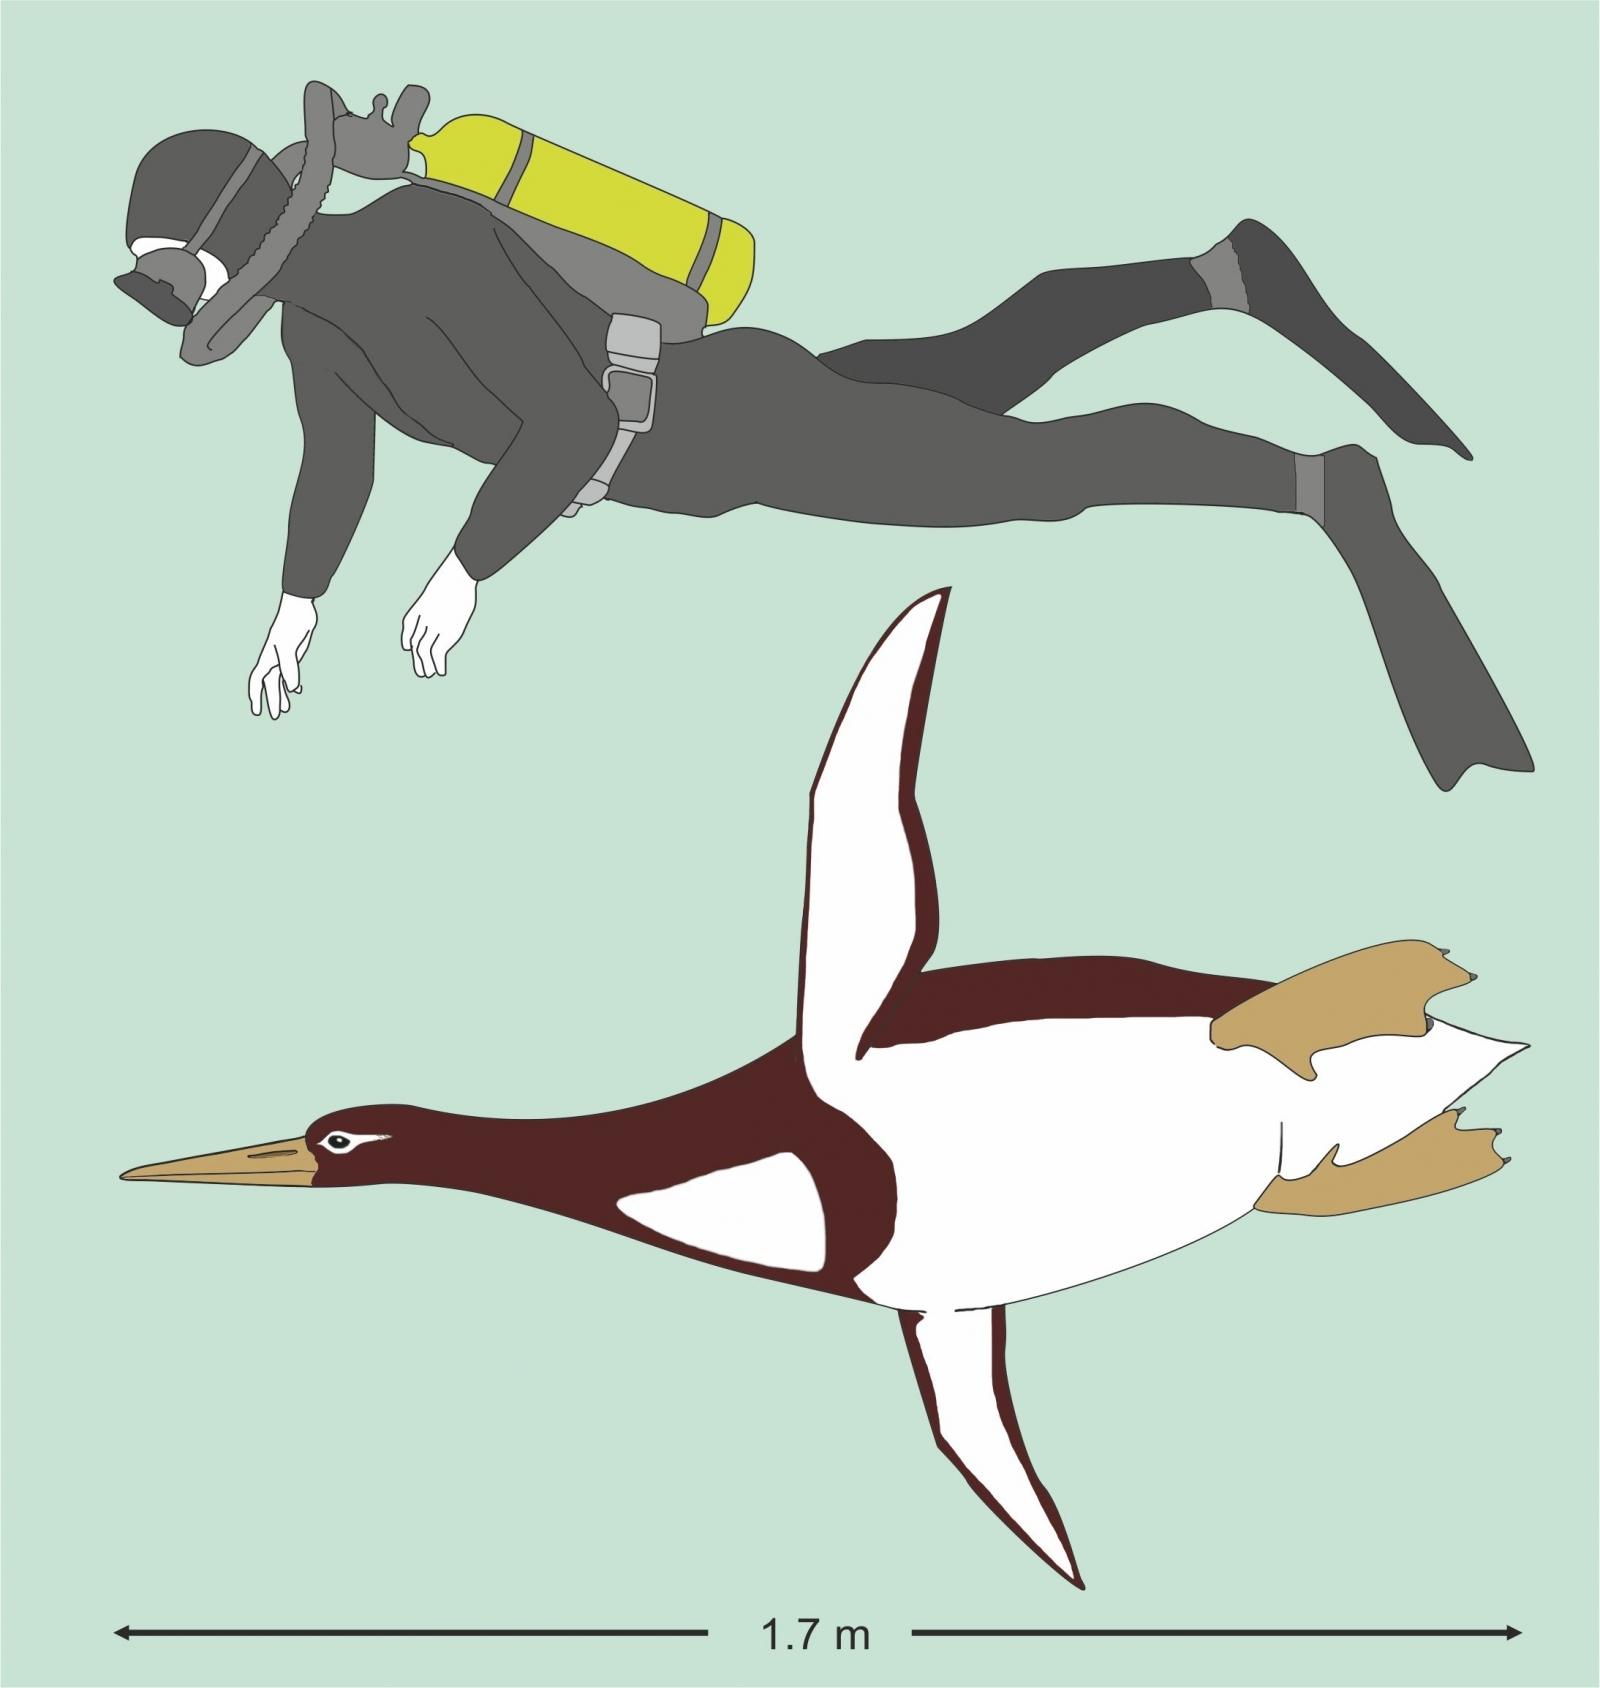 Human-sizeed ancient penguin fossils found in New Zealand